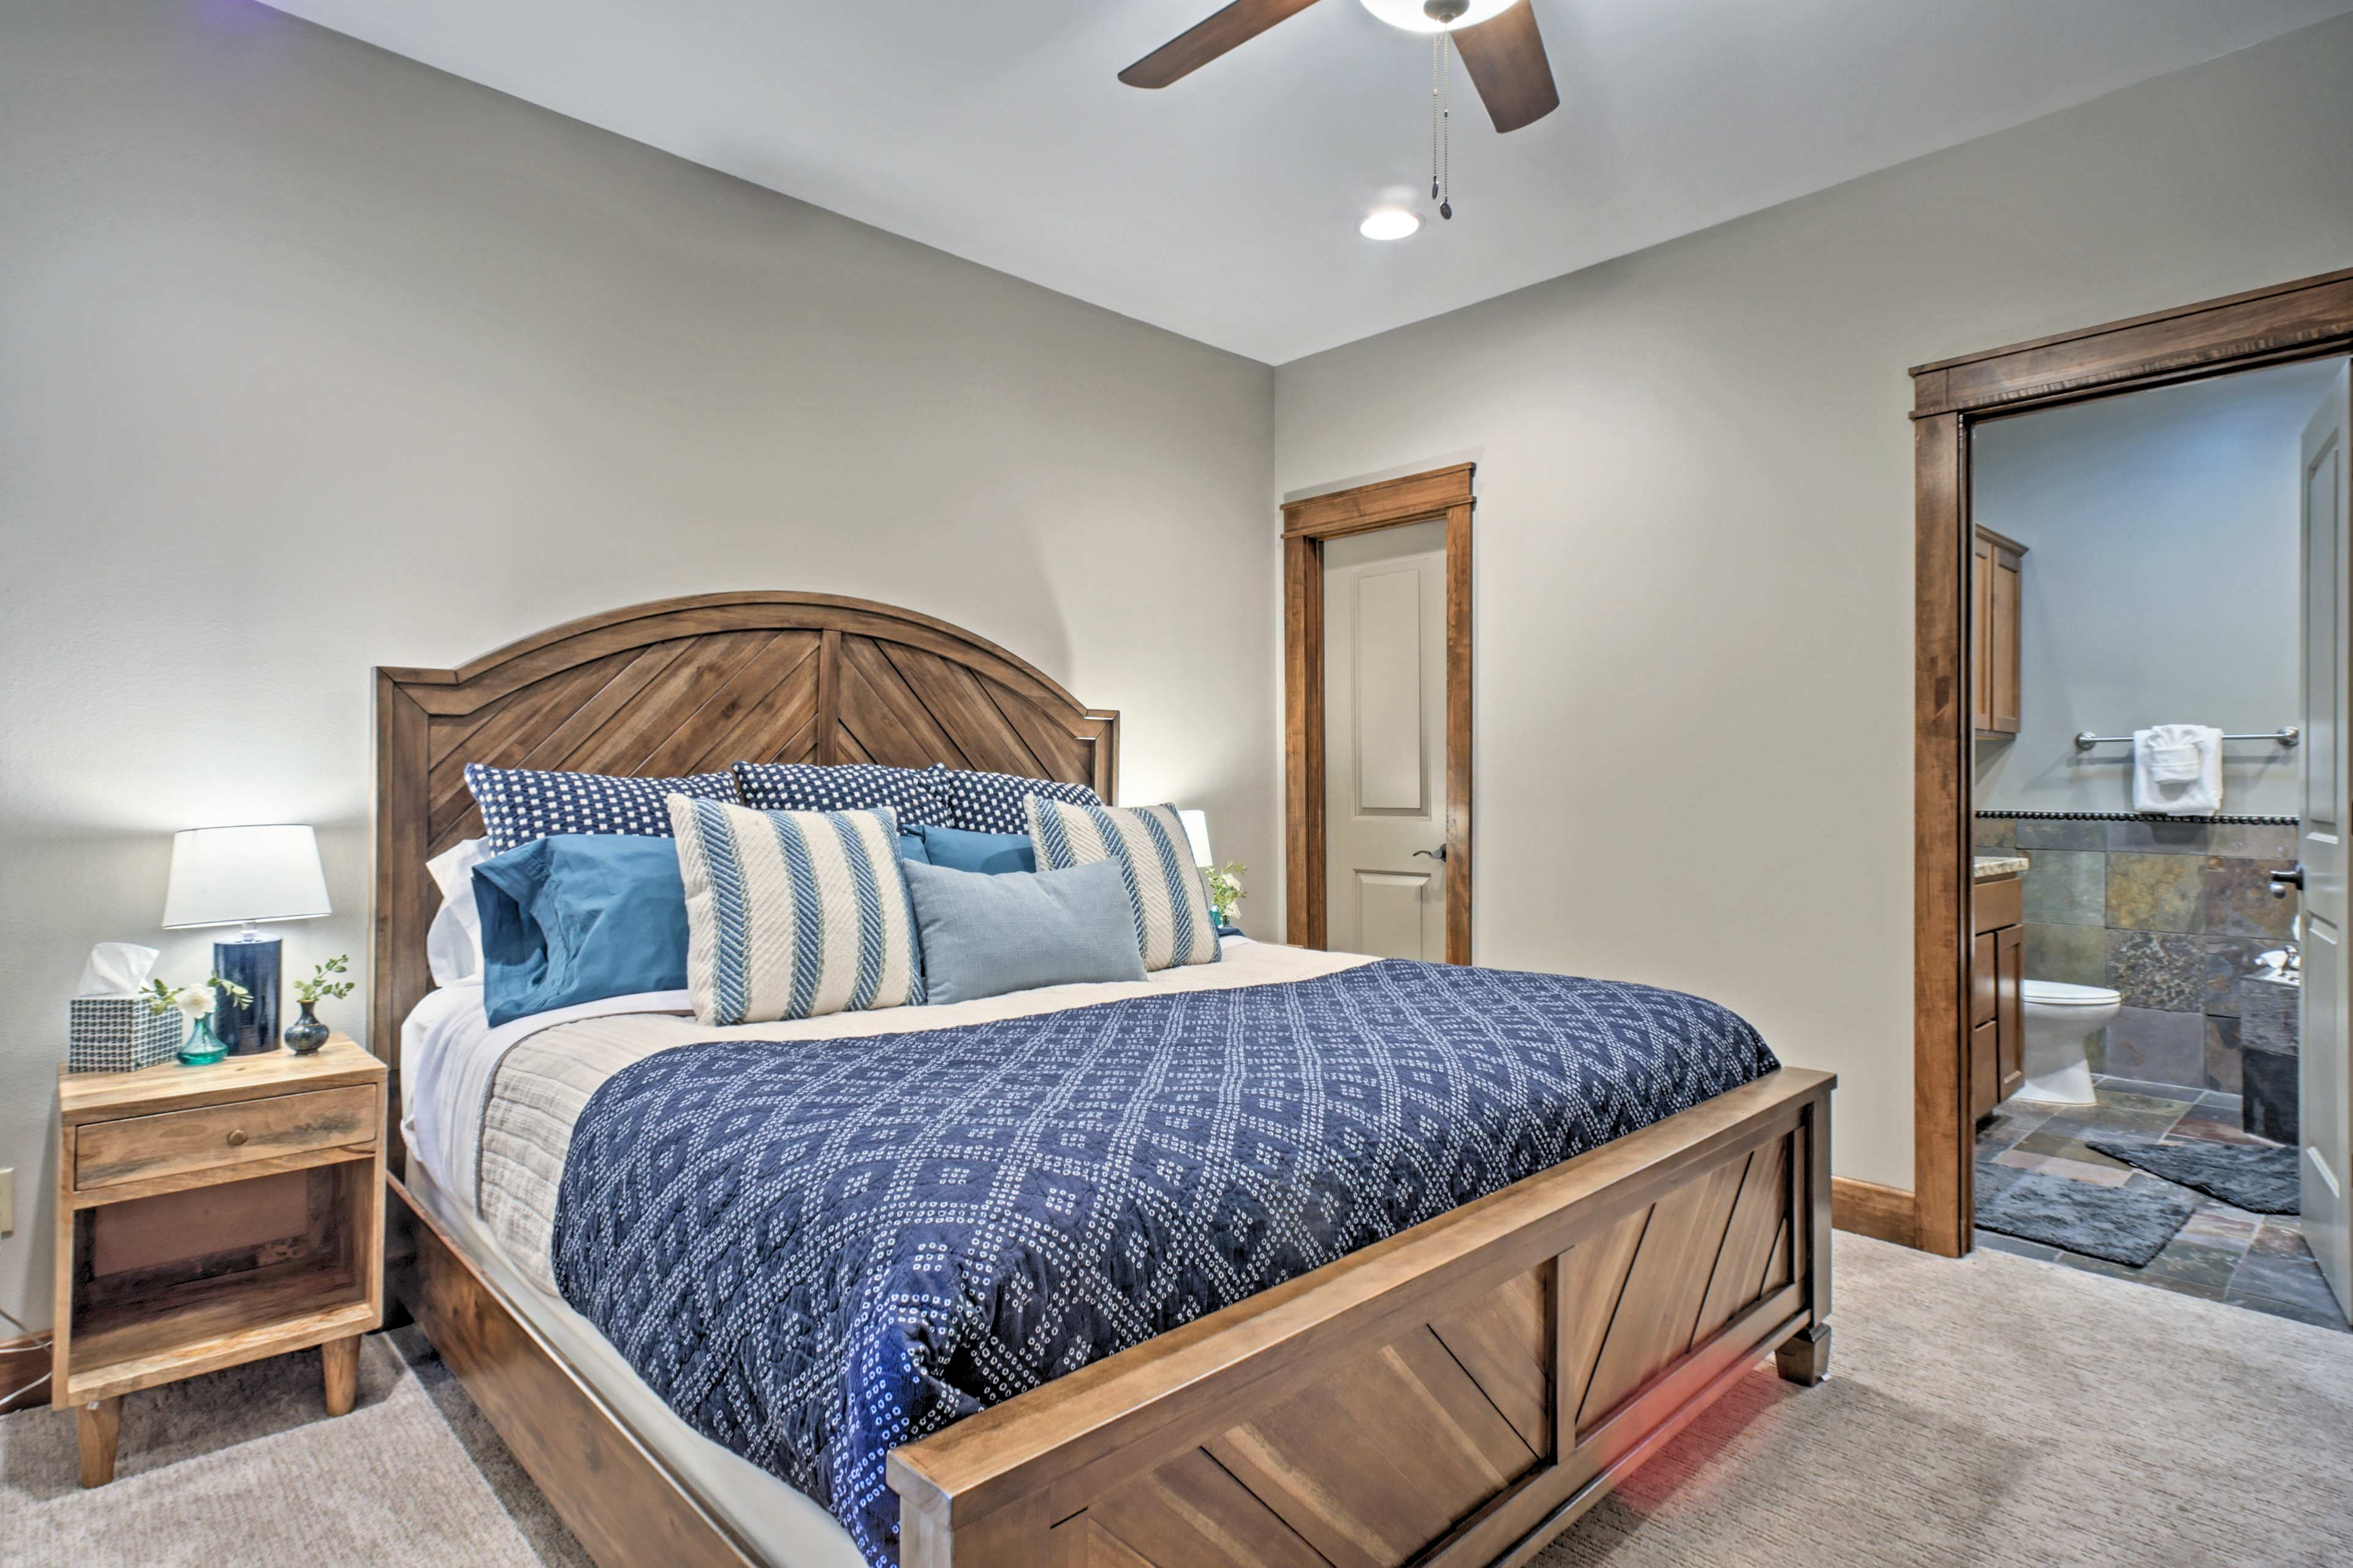 Doze off on the king bed in the master bedroom.